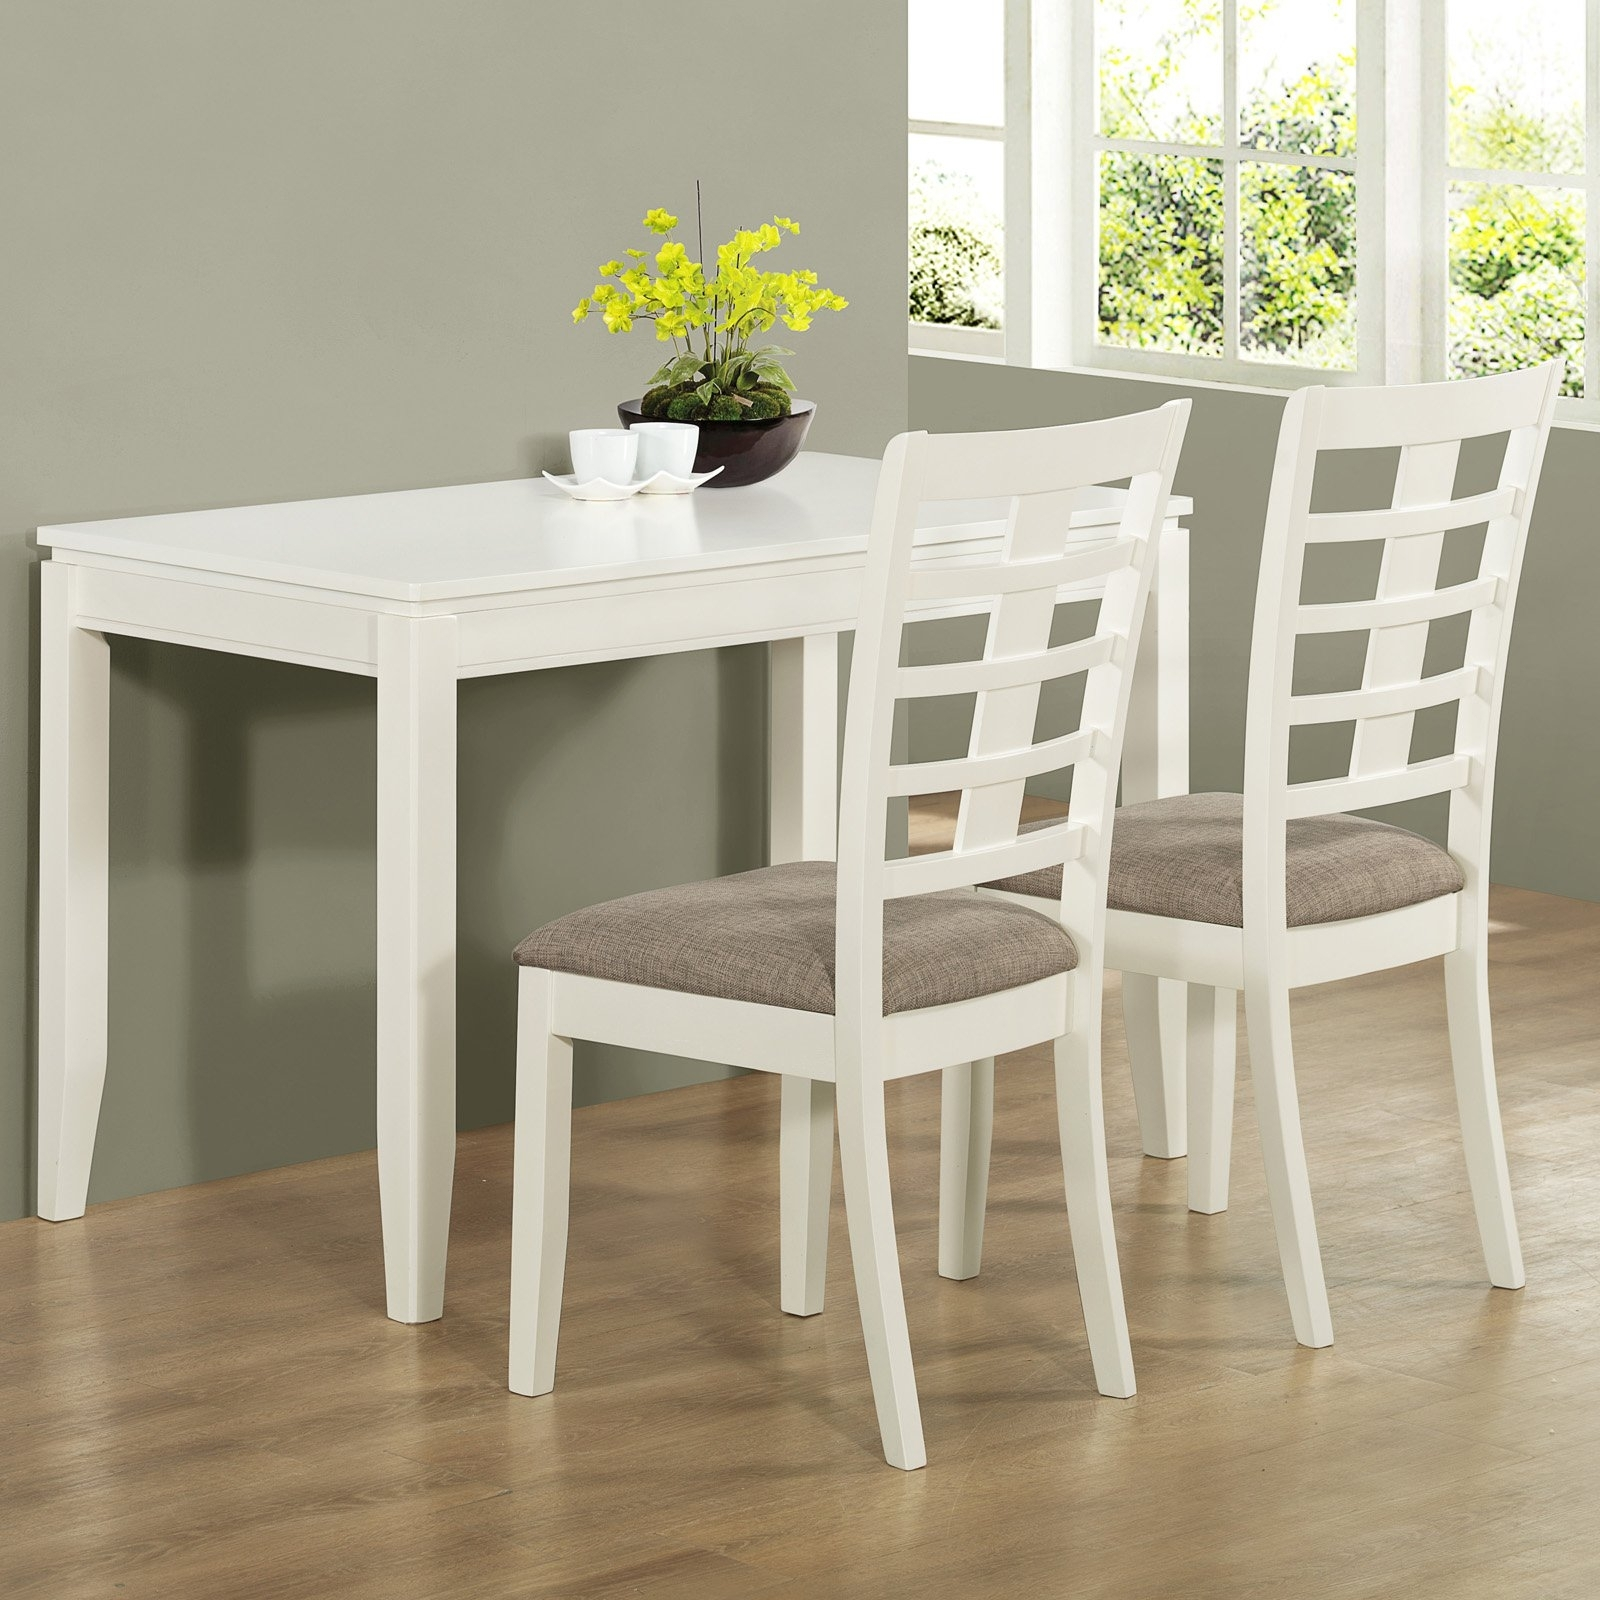 White Melamine Dining Tables Intended For Trendy White Melamine Finished Mahogany Wood Dining Set With Grey Velvet (View 22 of 25)